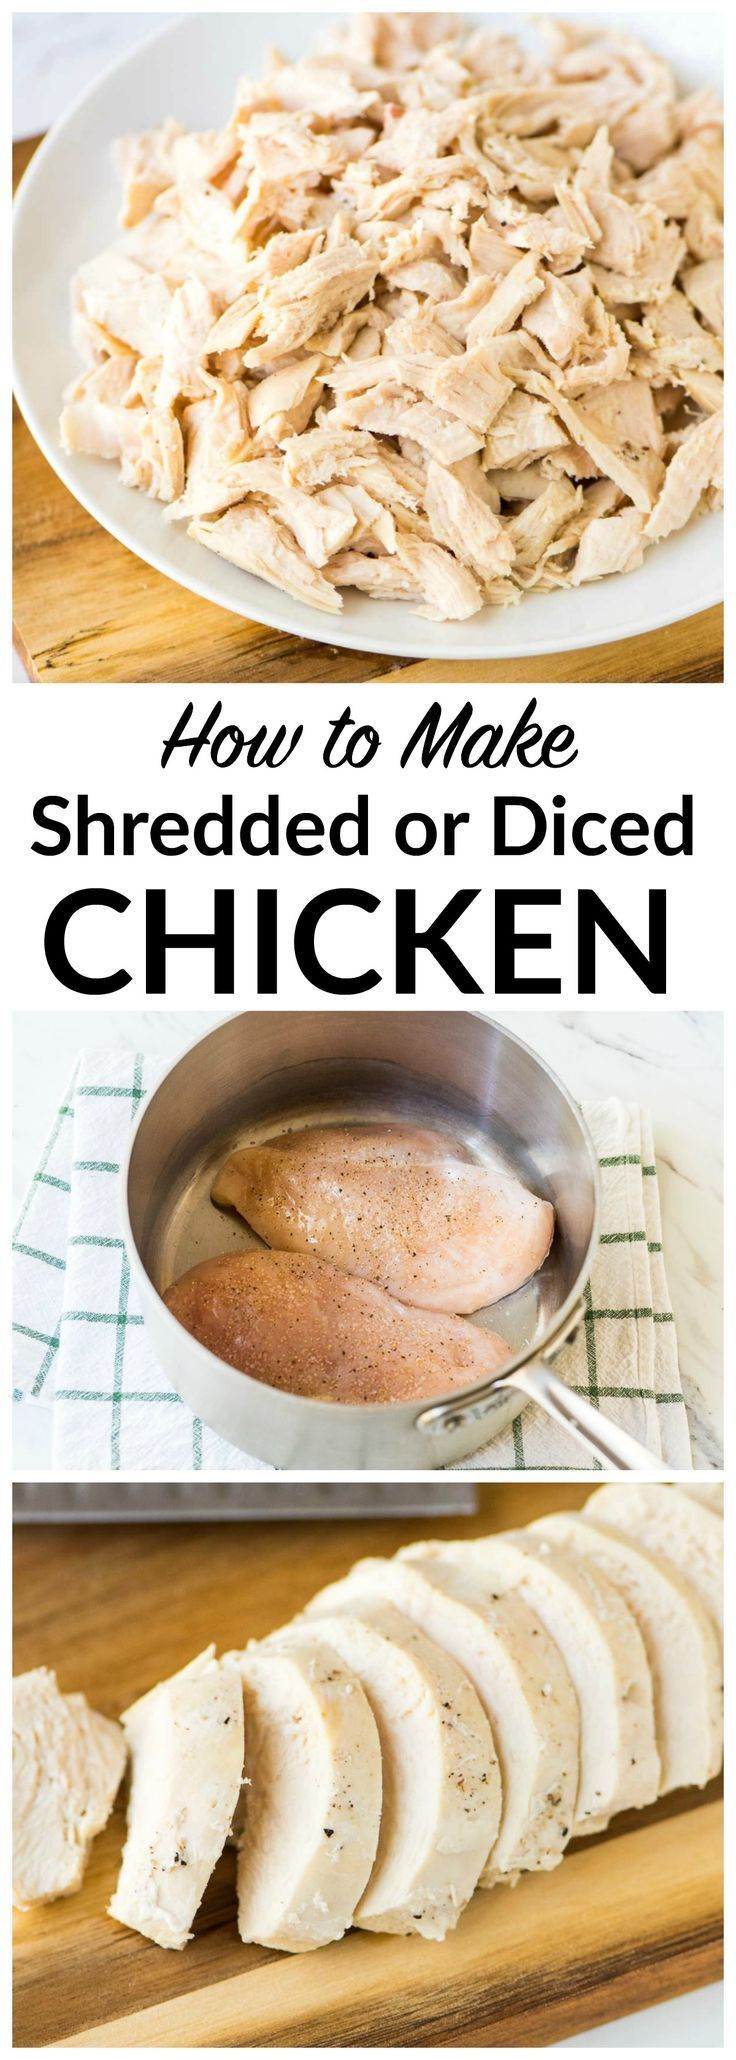 How to cook JUICY shredded chicken or diced chicken. EASY and perfect every time. Perfect for so many meals and dinners! Use this method anytime a recipe calls for adding cooked chicken: chicken salad, chicken enchiladas, chicken sandwiches, and more! Recipe at wellplated.com | @wellplated